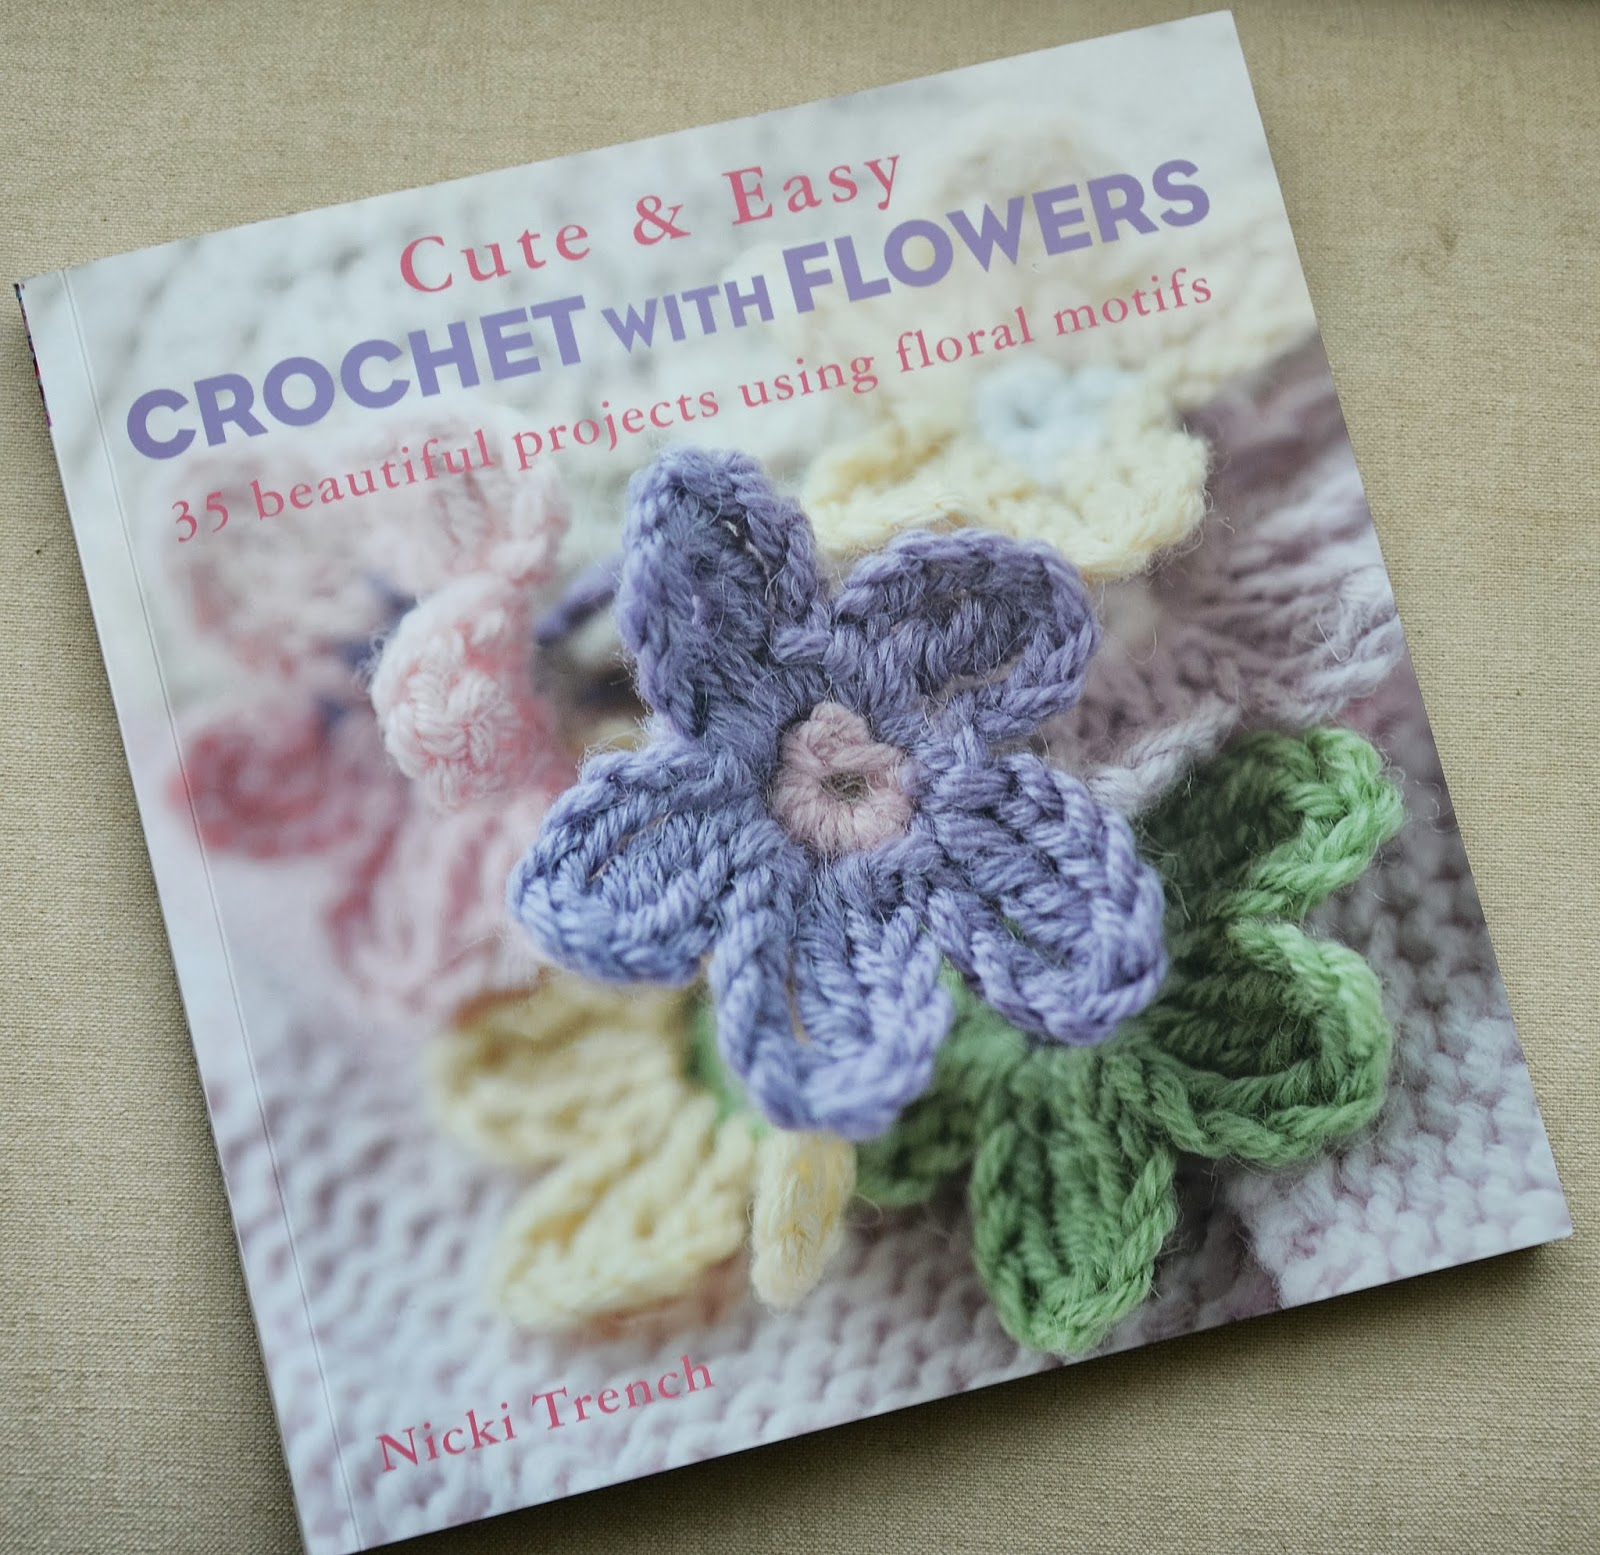 Easy Crochet Book Cover : Chrissie crafts book review cute easy crochet with flowers